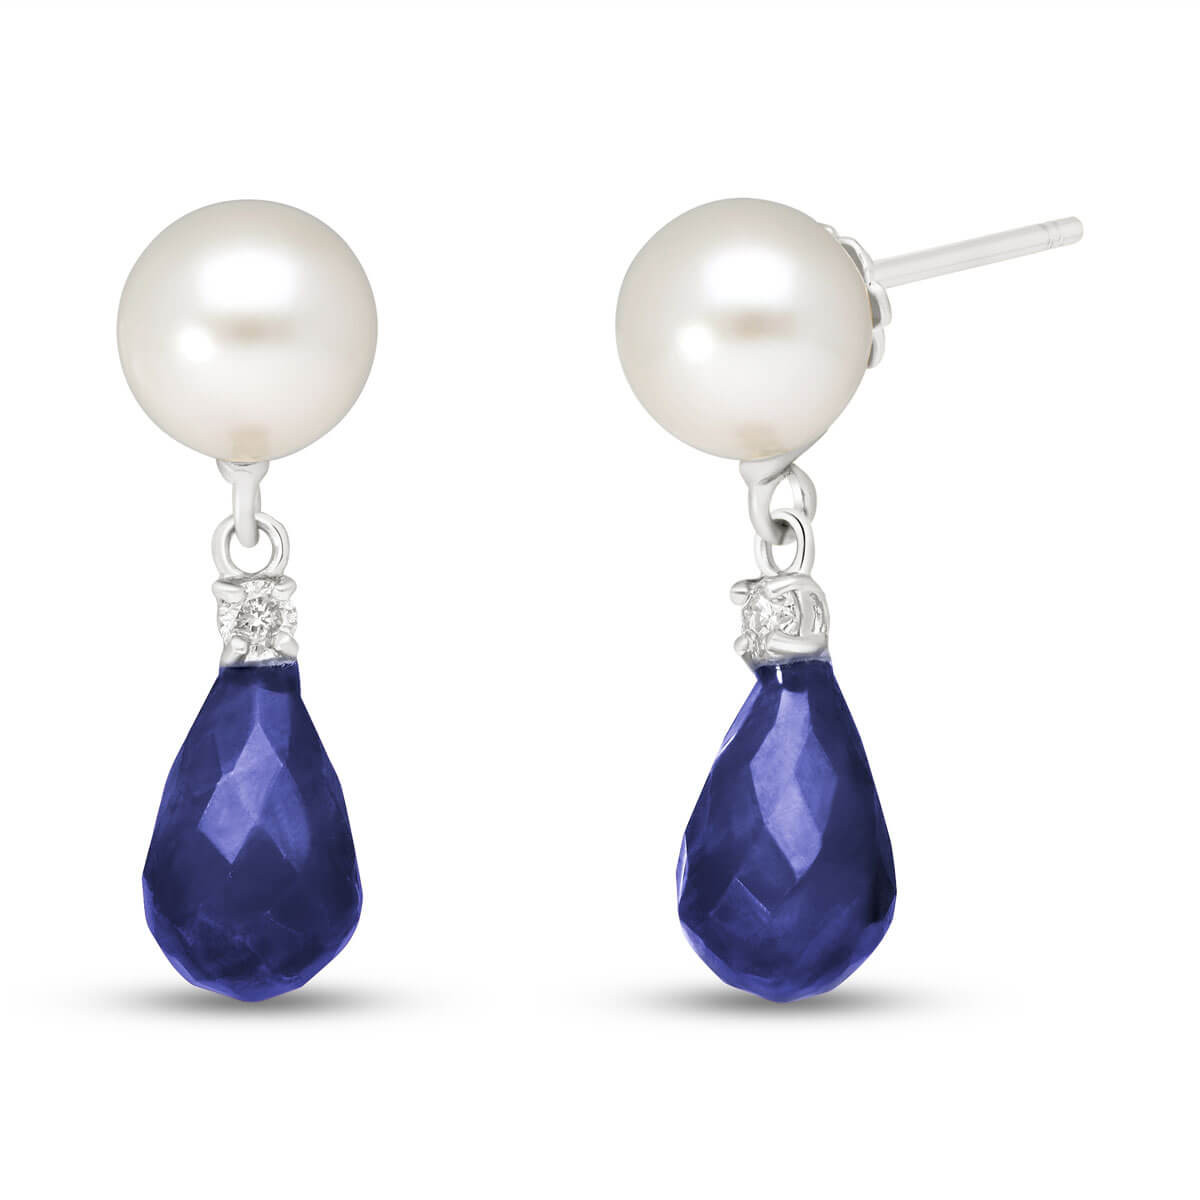 Sapphire, Diamond & Pearl Drop Earrings in 9ct White Gold